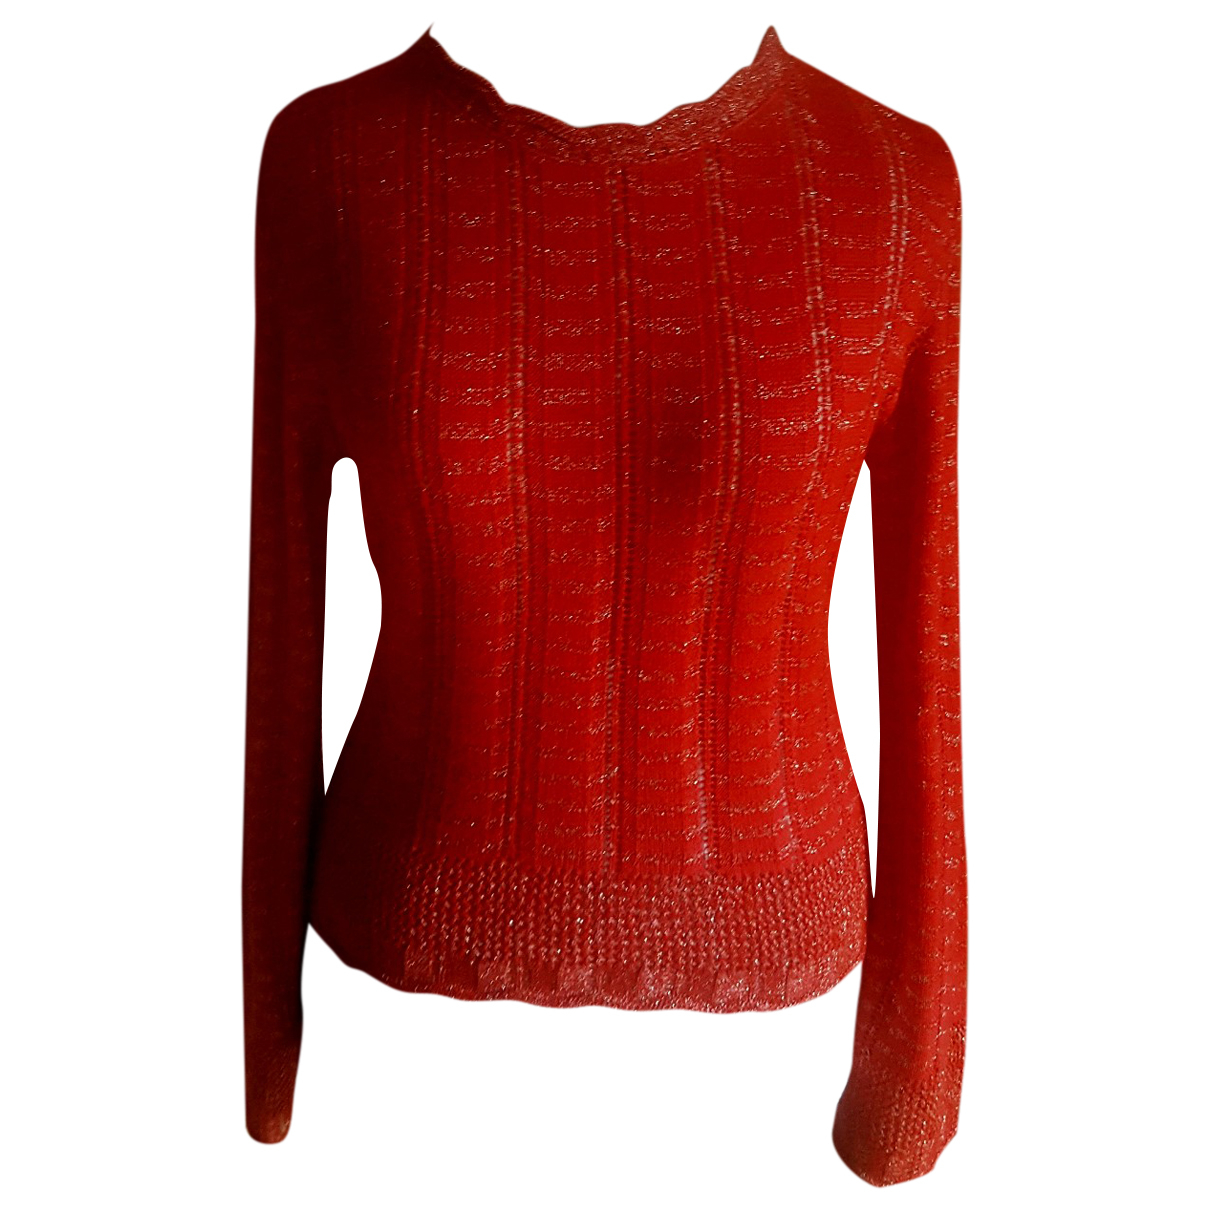 Christian Lacroix N Red Cotton Knitwear for Women 42 FR